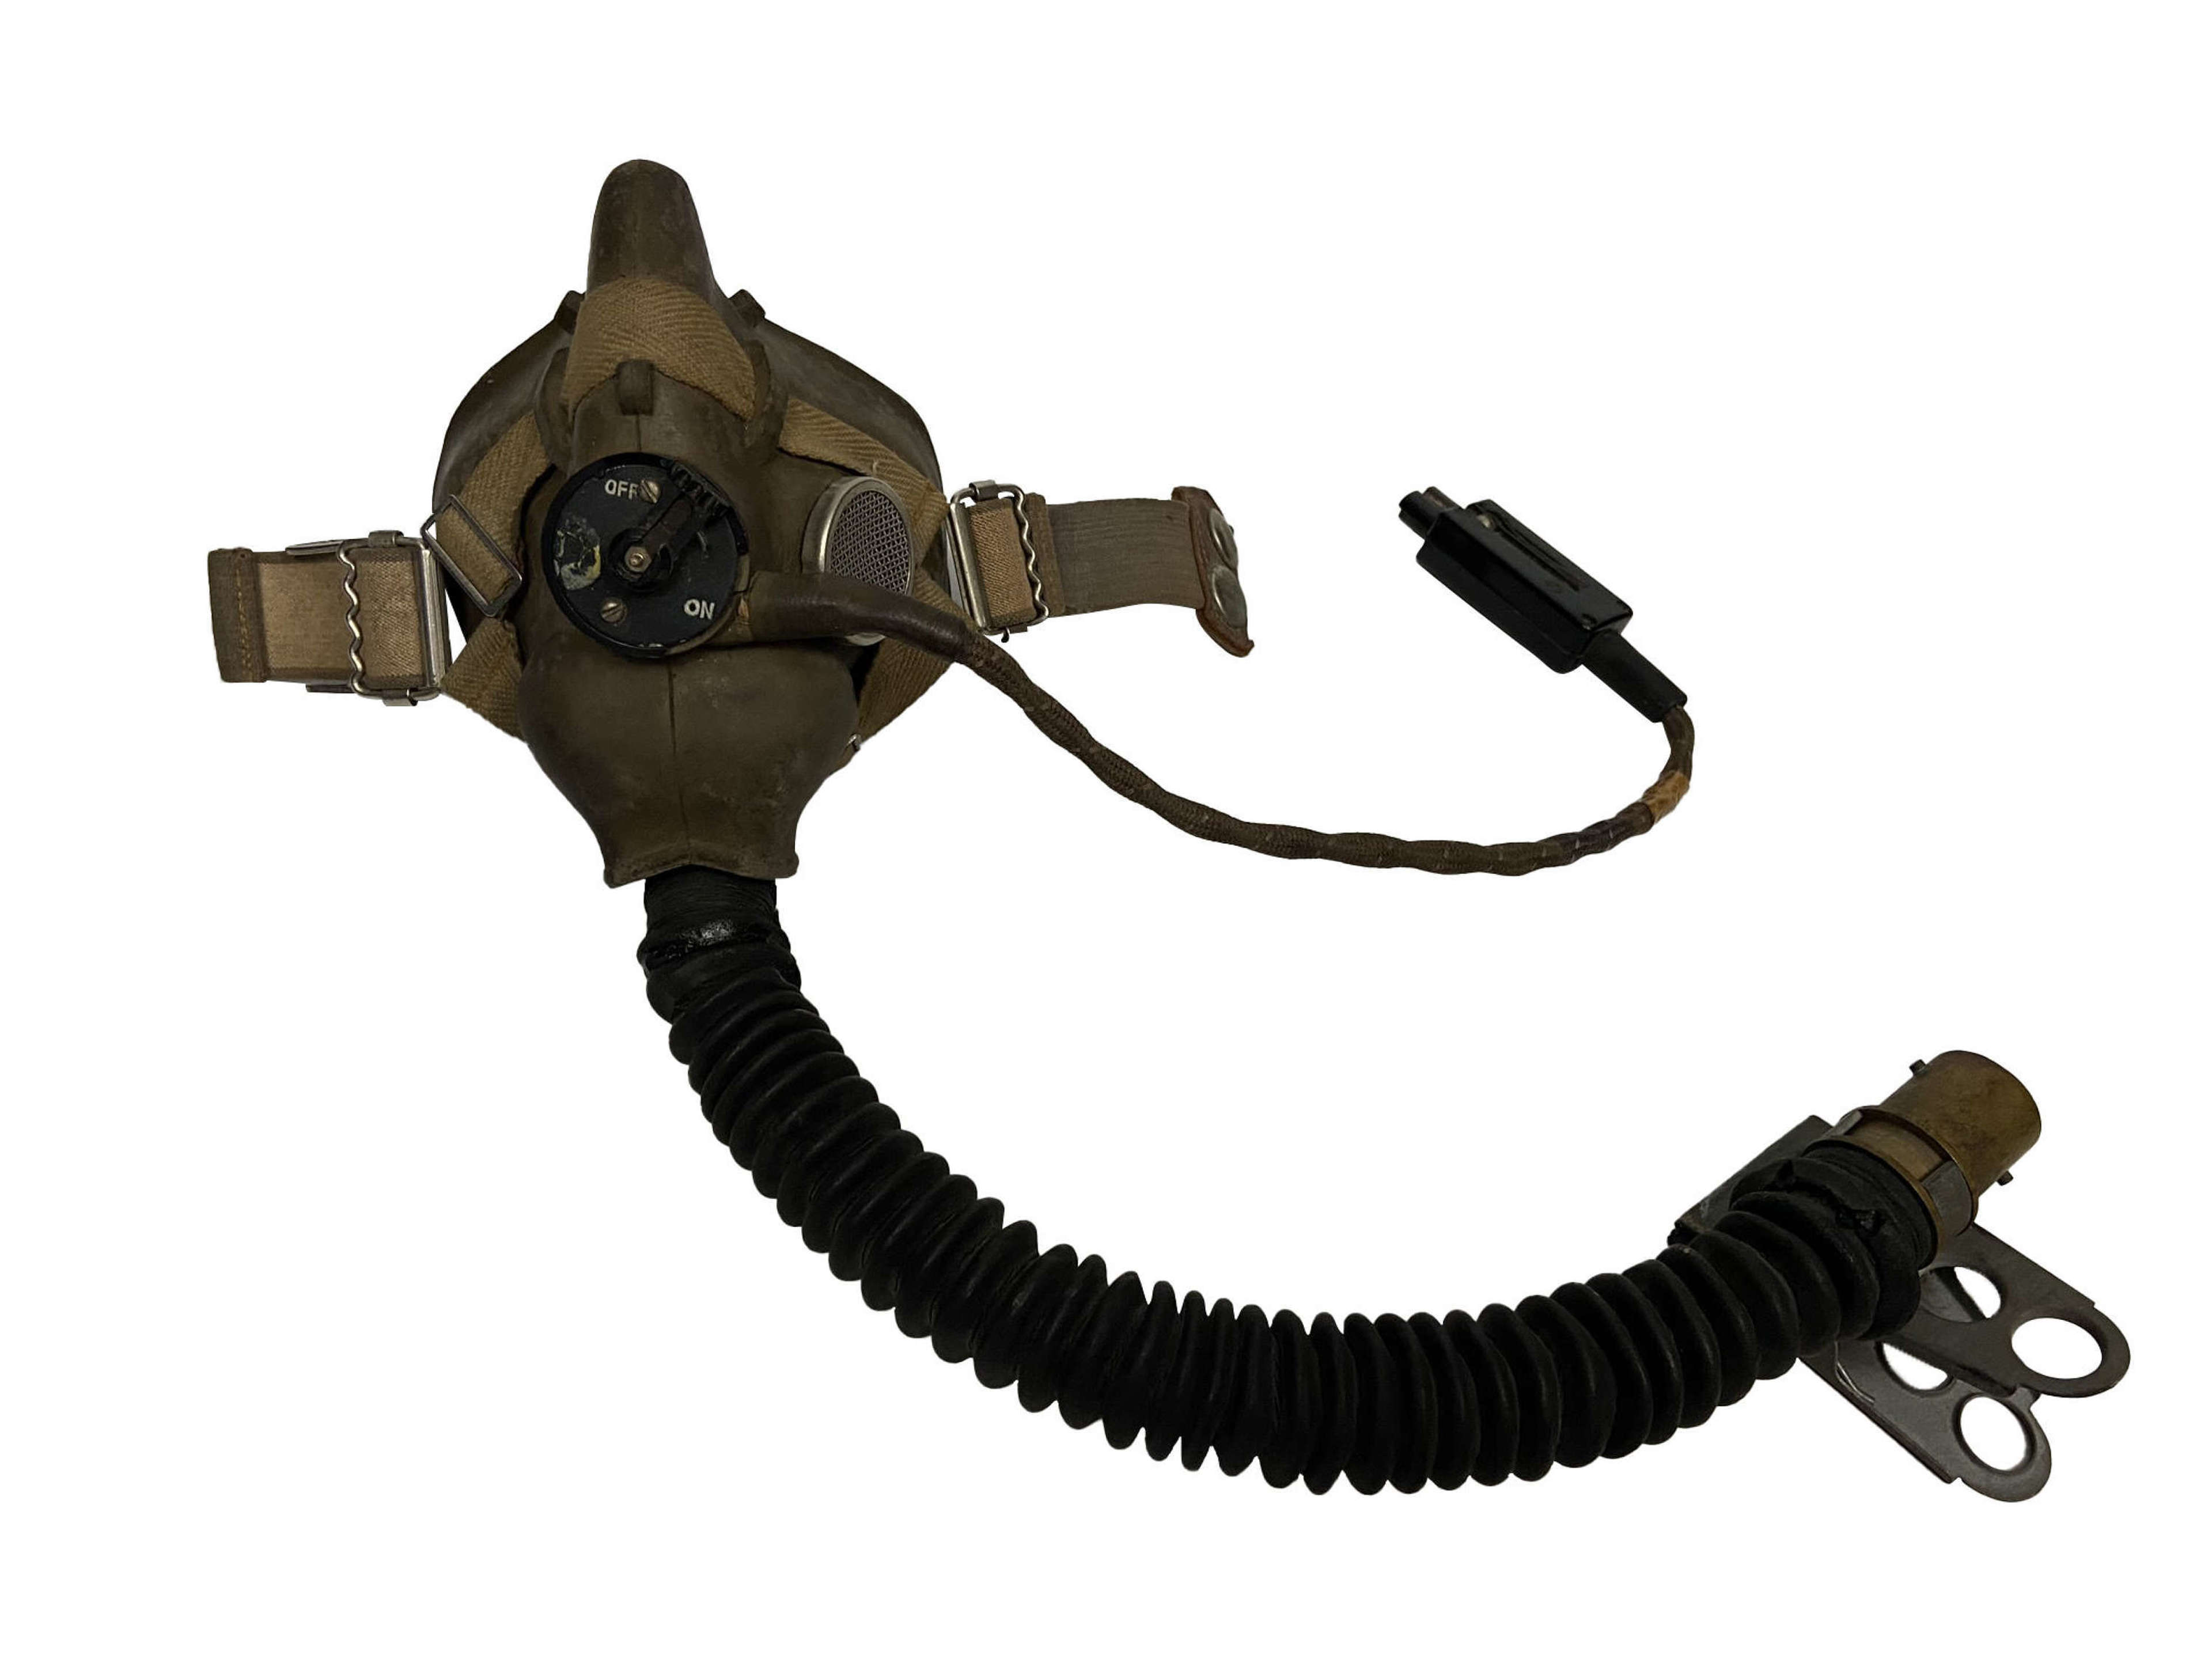 Original 1946 Dated RAF H Type Oxygen Mask and Hose.